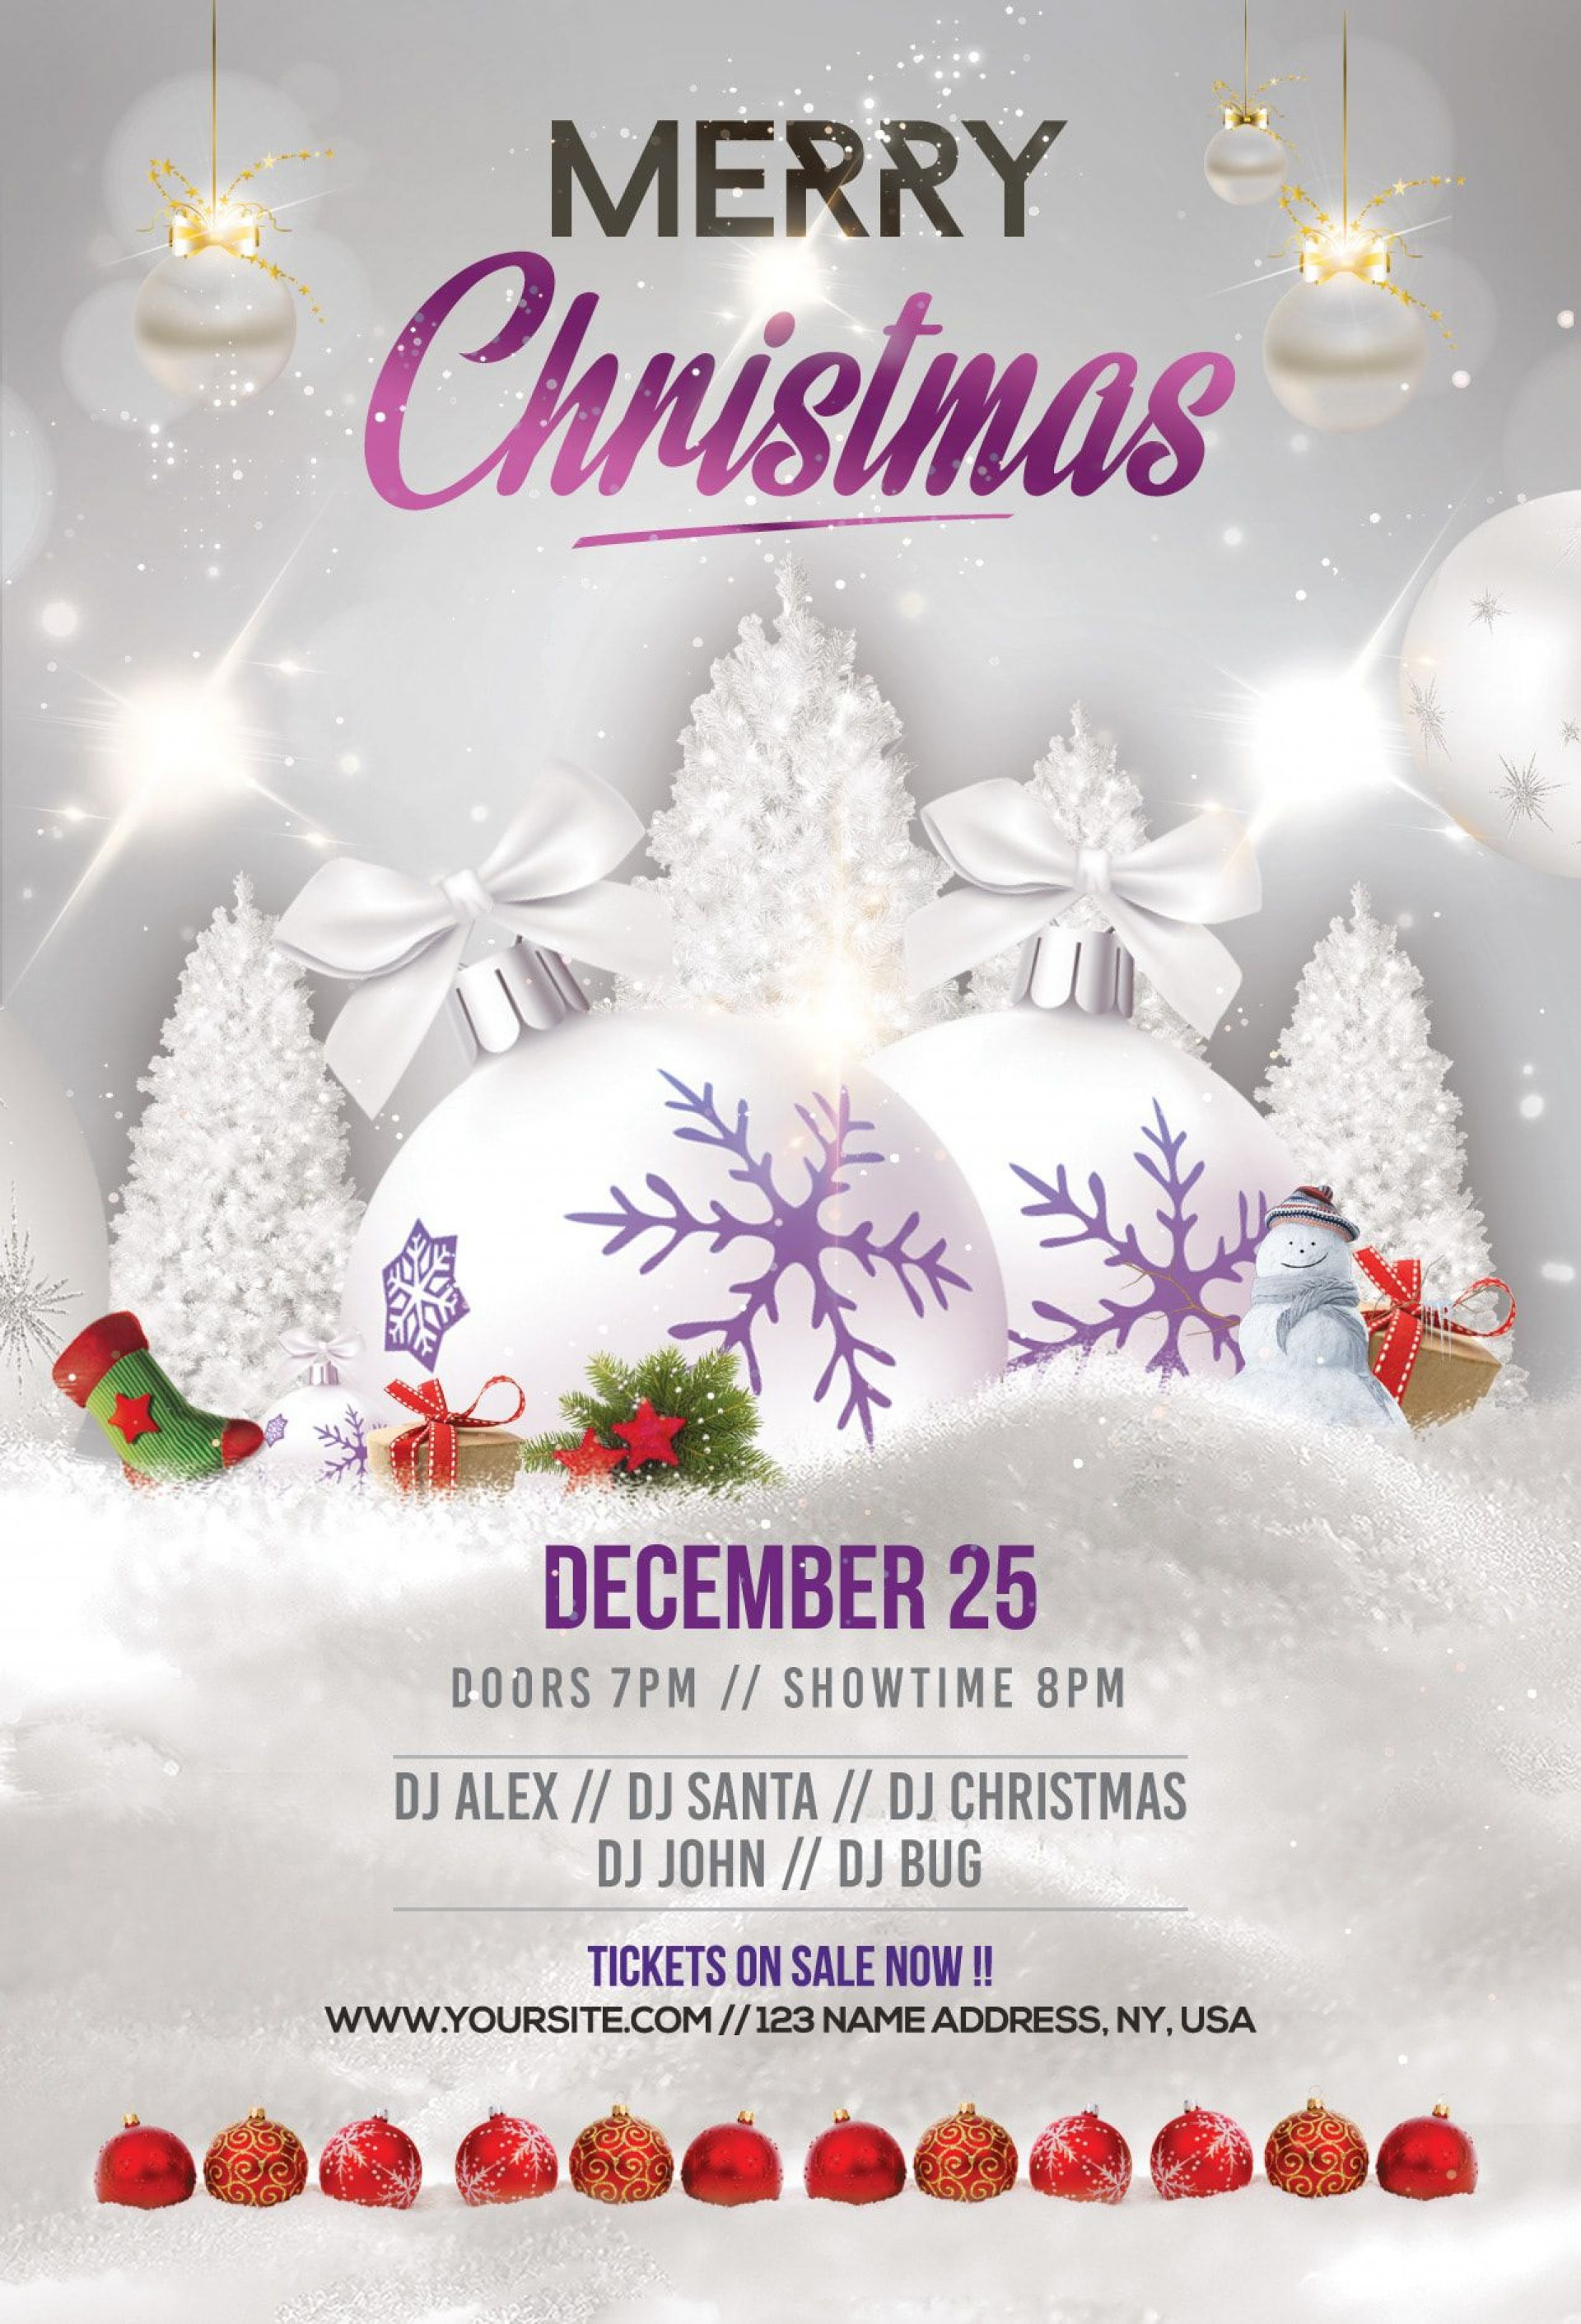 003 Unusual Free Holiday Flyer Template Inspiration  Templates For Word Printable Christma1920